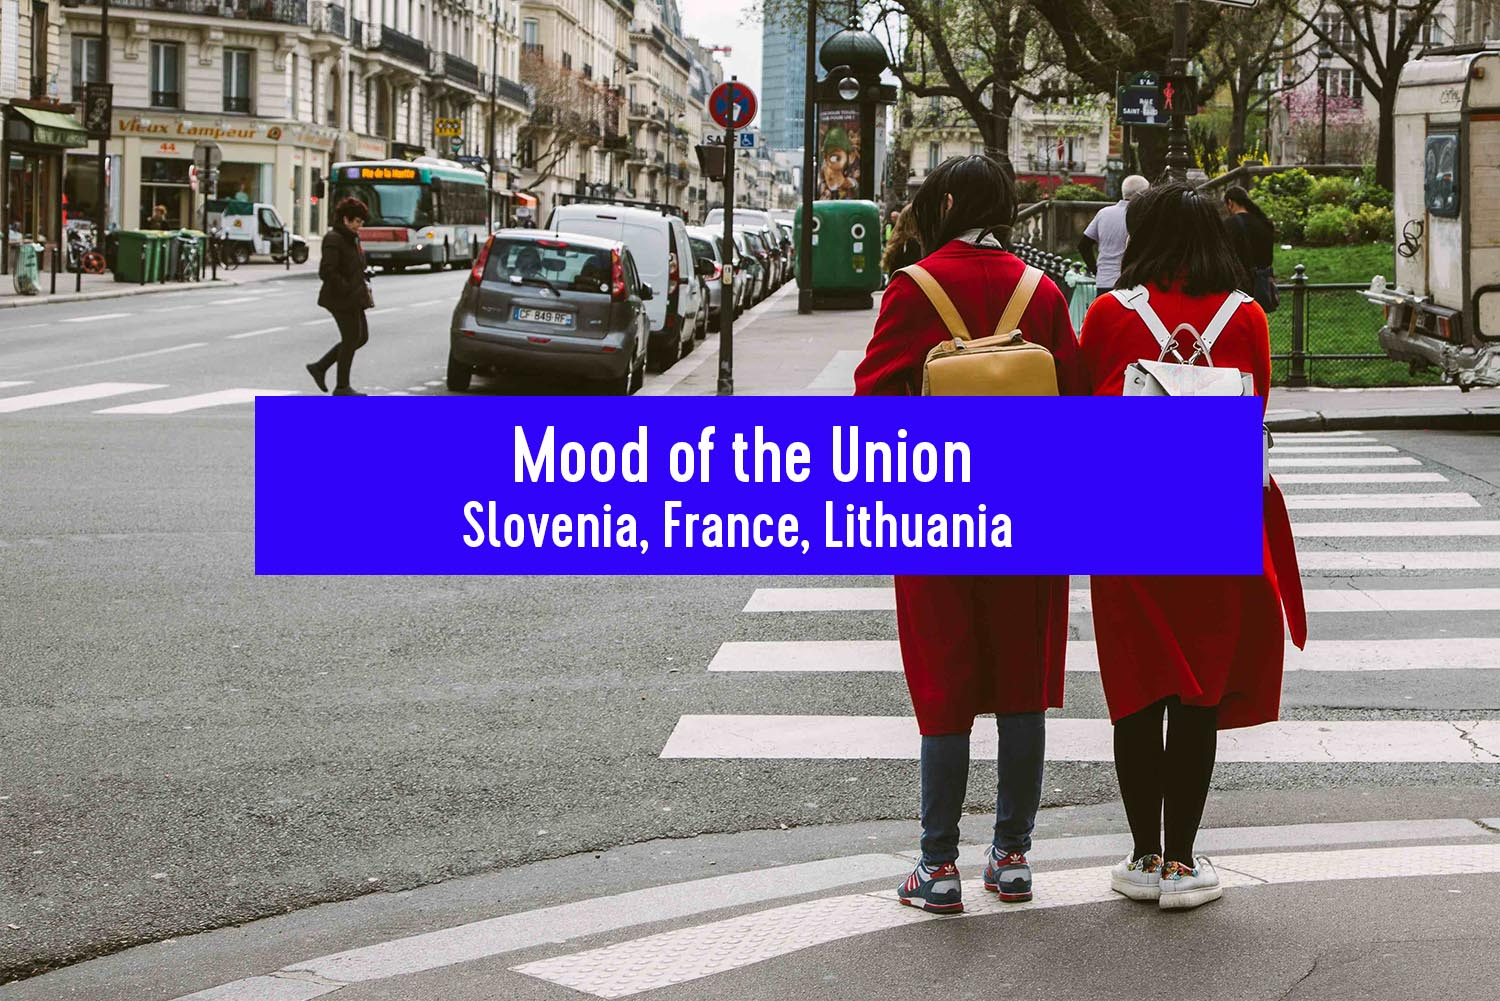 Long read: Mood of the union - If you are interested to read more in-depth opinion pieces on the state of Europe today and the elections, look no further. Eurozine has started a new focal point collecting articles that explore the difficult relationship between old and new EU nations, the centres and the peripheries, the government and the voter.